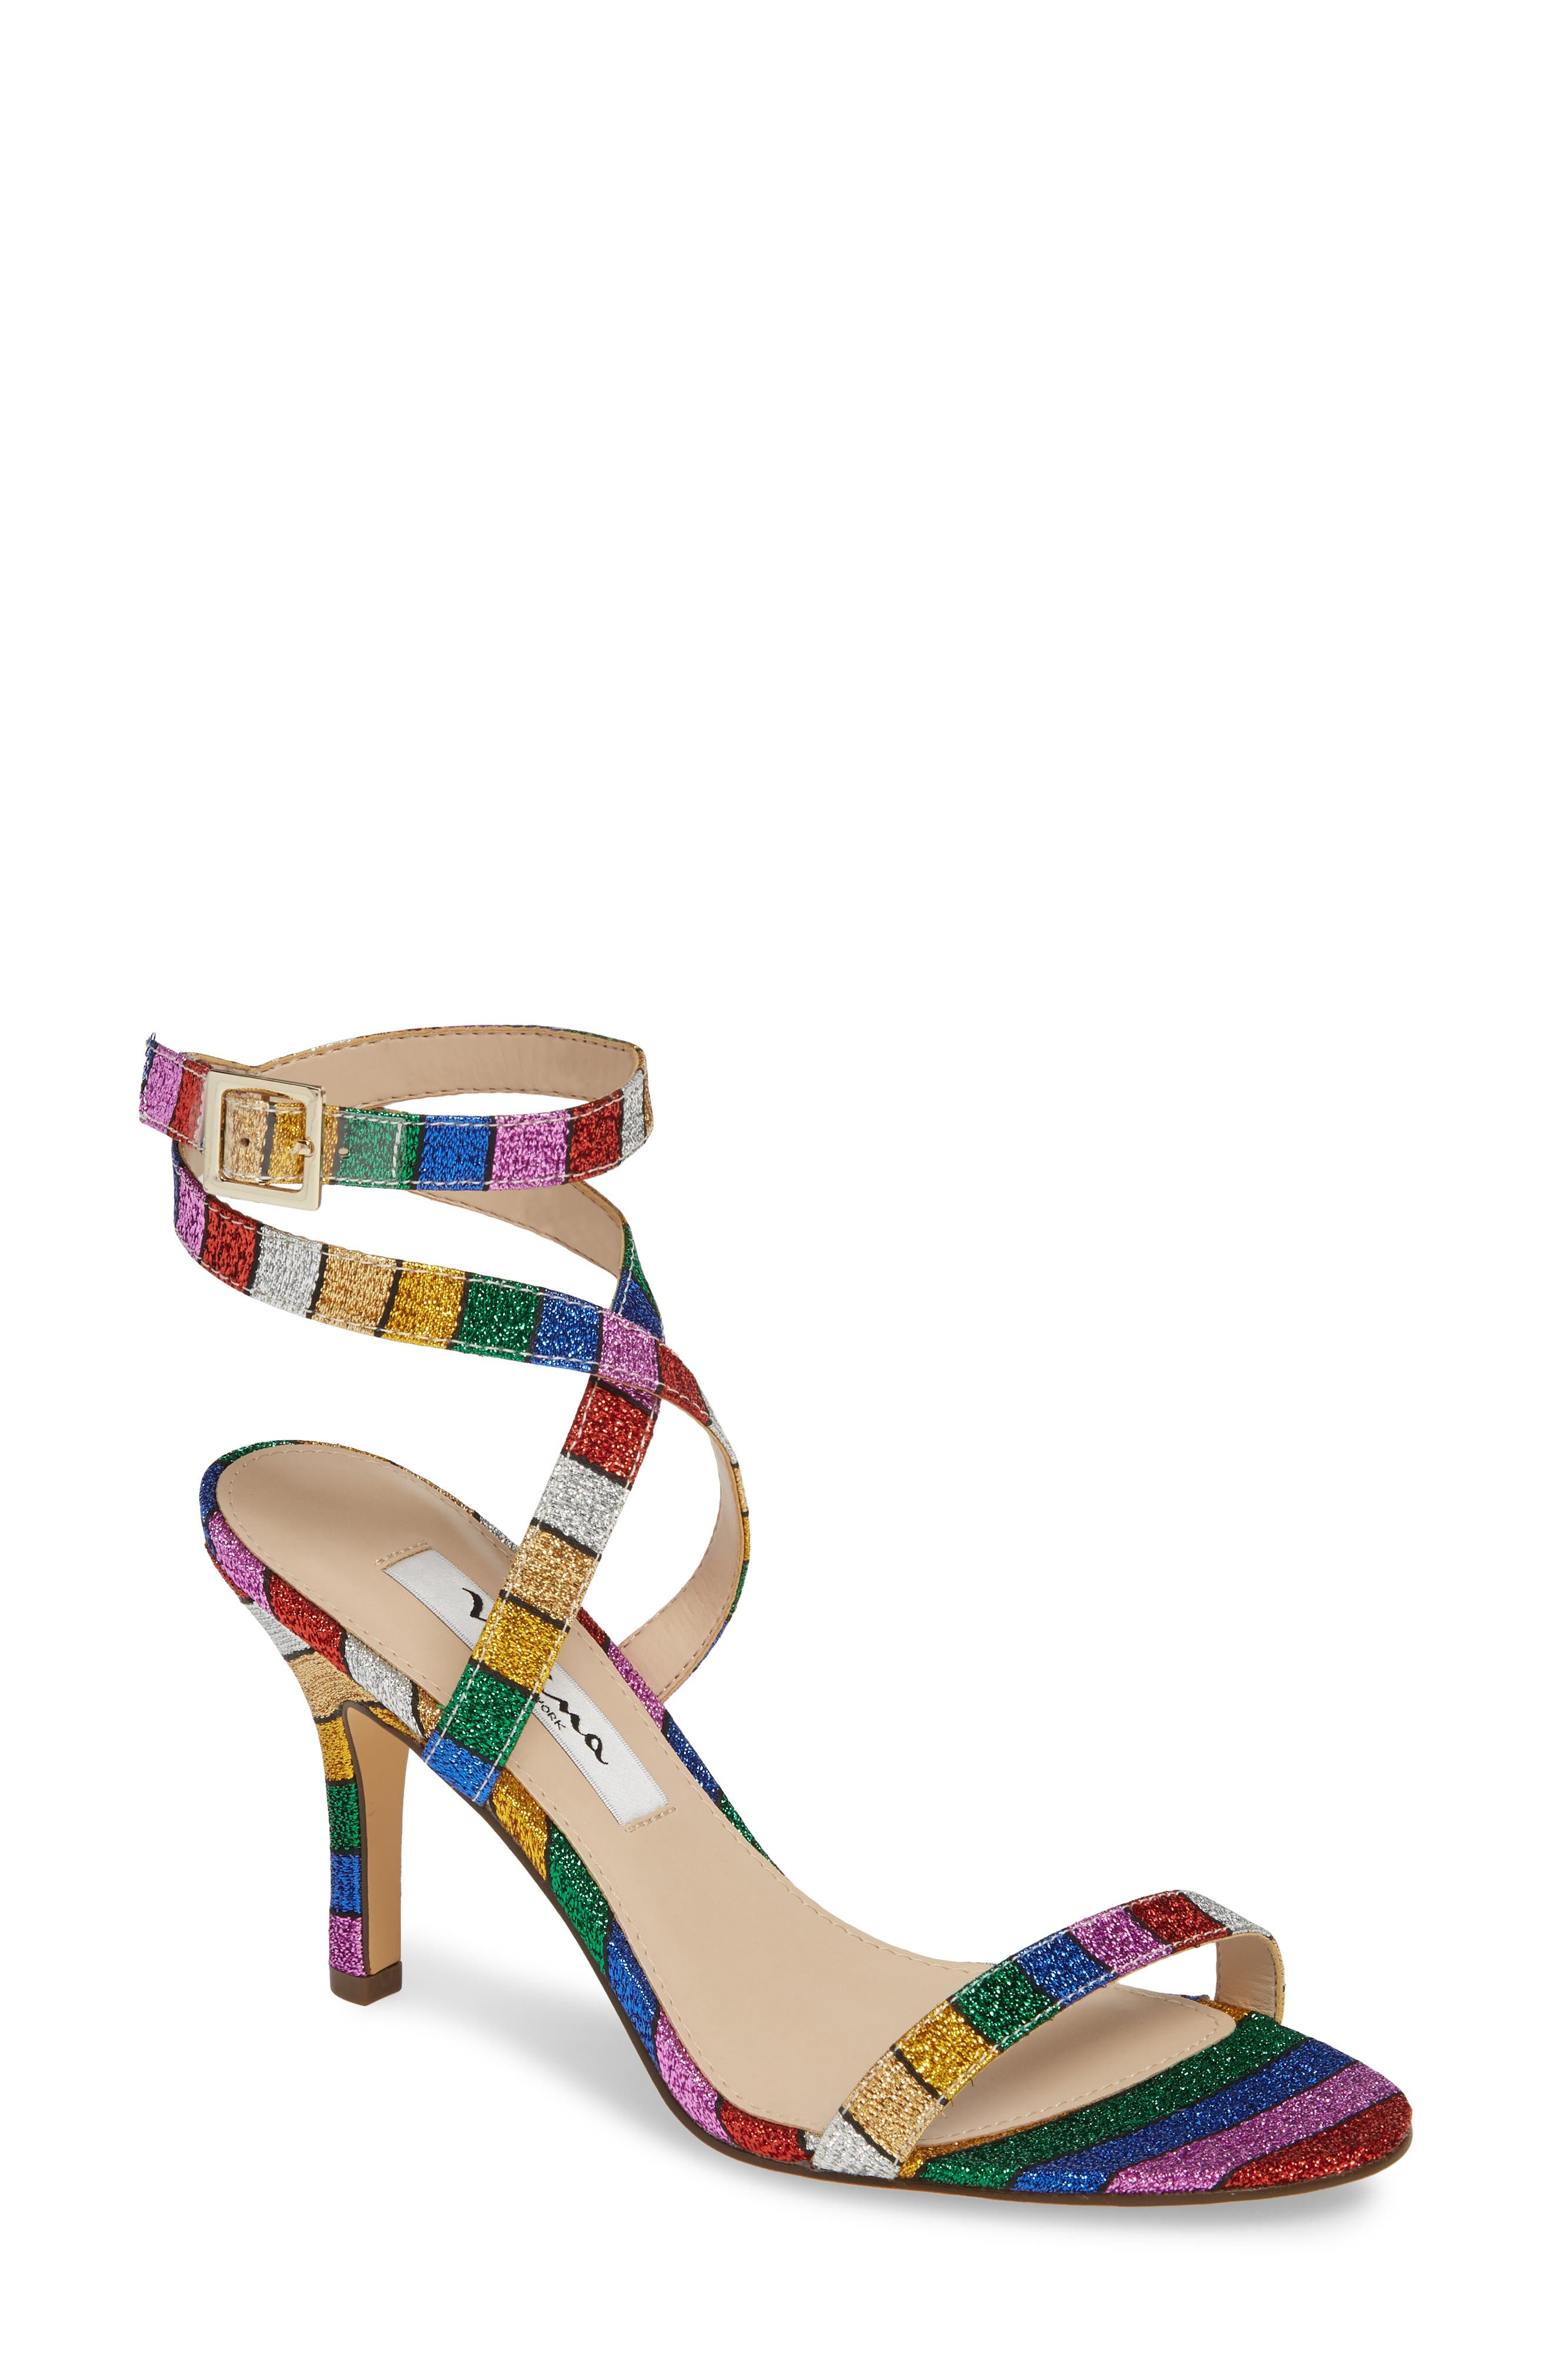 NINA, Vanna Ankle Strap Sandal, Main thumbnail 1, color, RAINBOW MULTI FABRIC